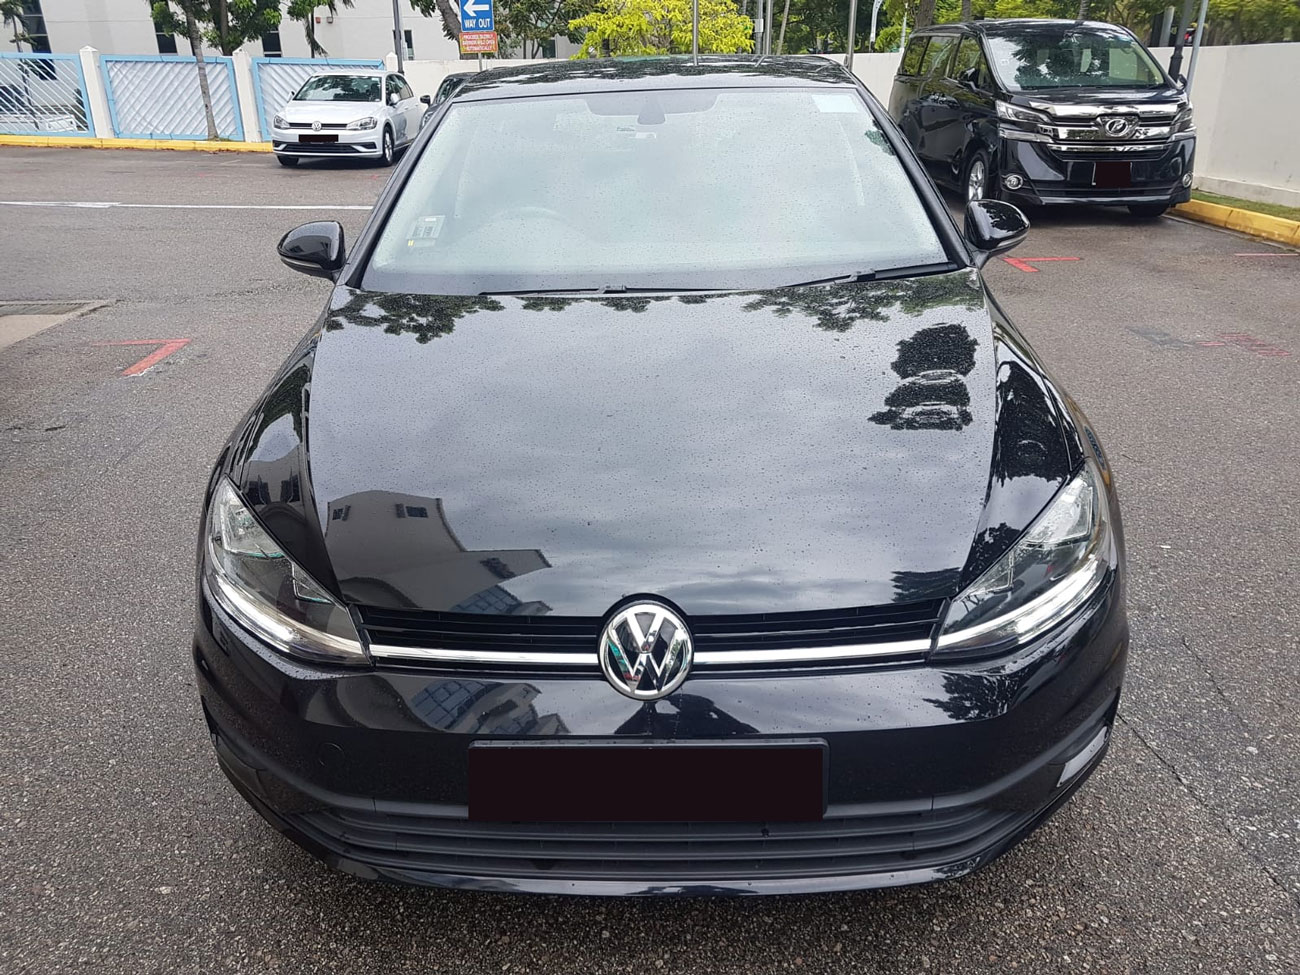 Volkswagen Golf TSI 1.0A (For Rent)